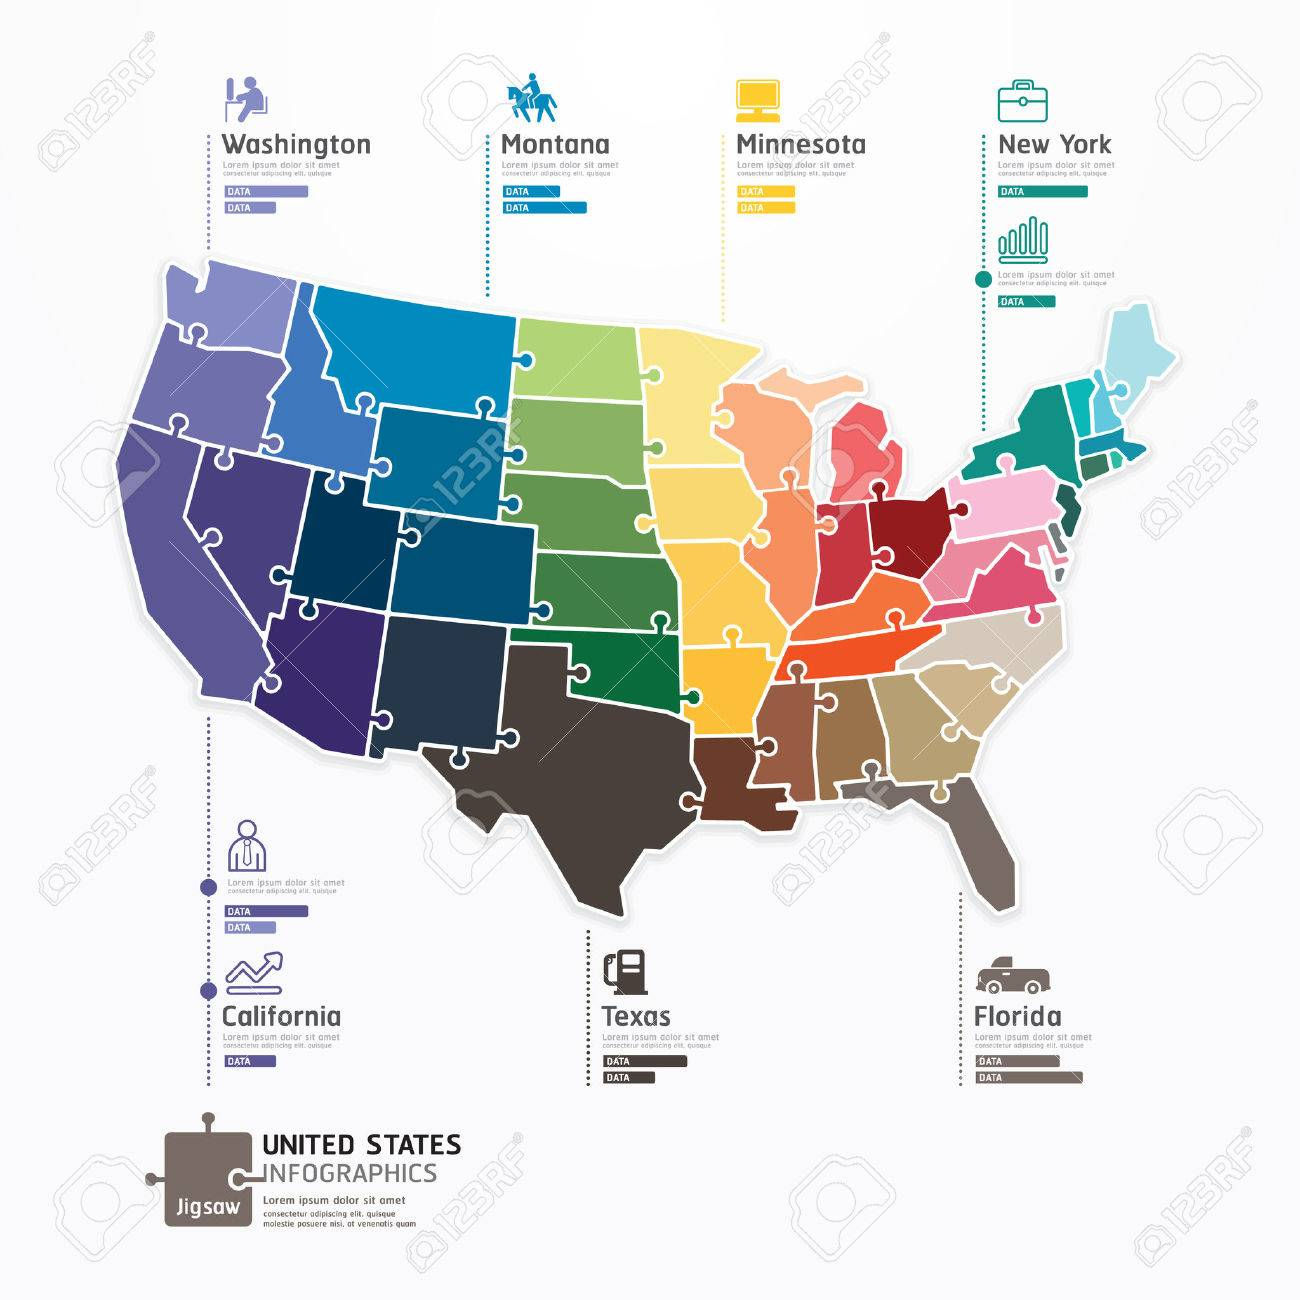 California State Map Jigsaw Puzzle PuzzleWarehousecom  The - Puzzle us map